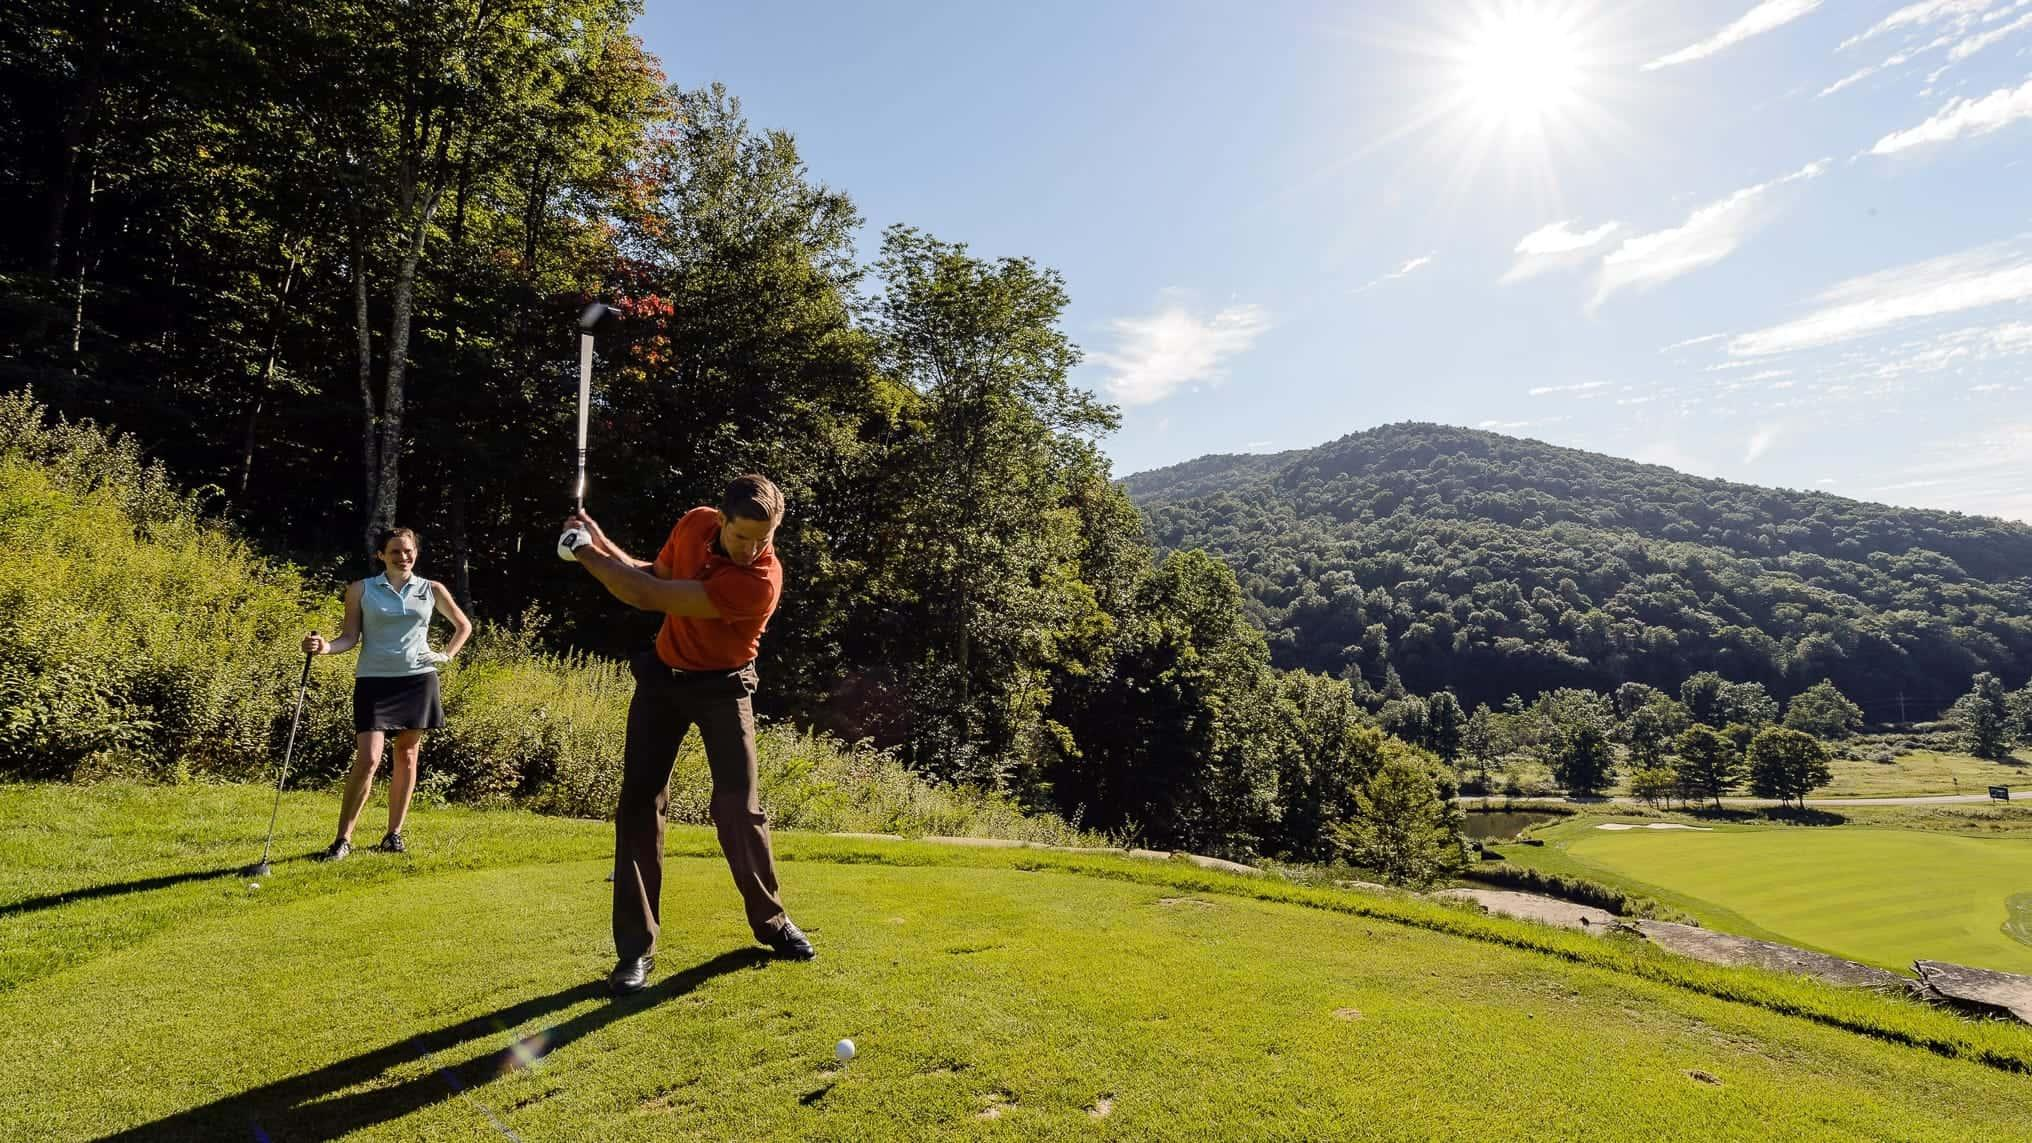 Golfing at the nearby Raven Course is a popular summertime activity!